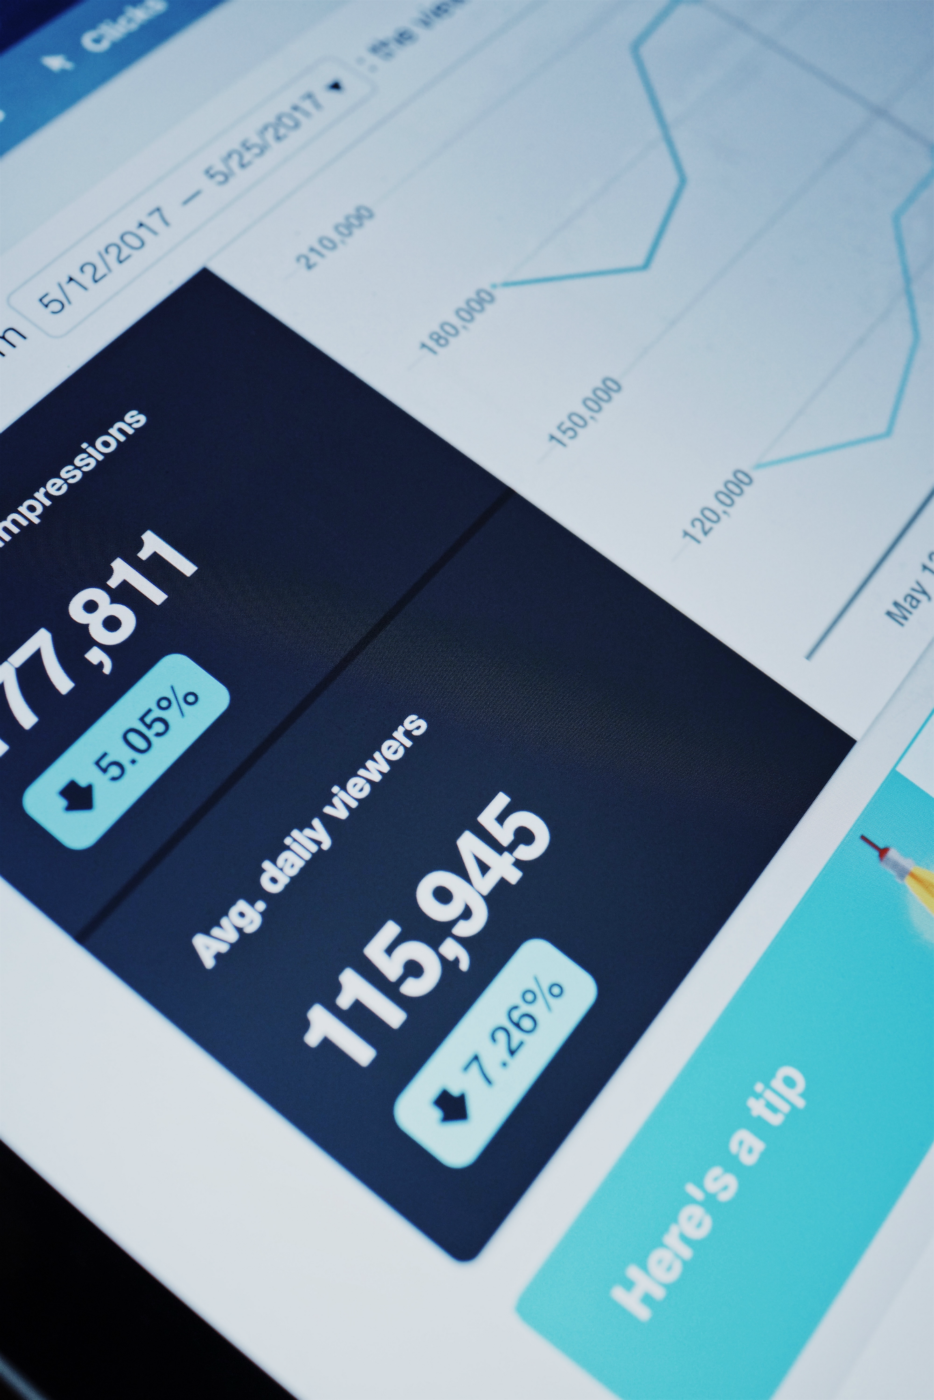 5 Tips to Increase Website Conversions for Financial Advisors Featured Image